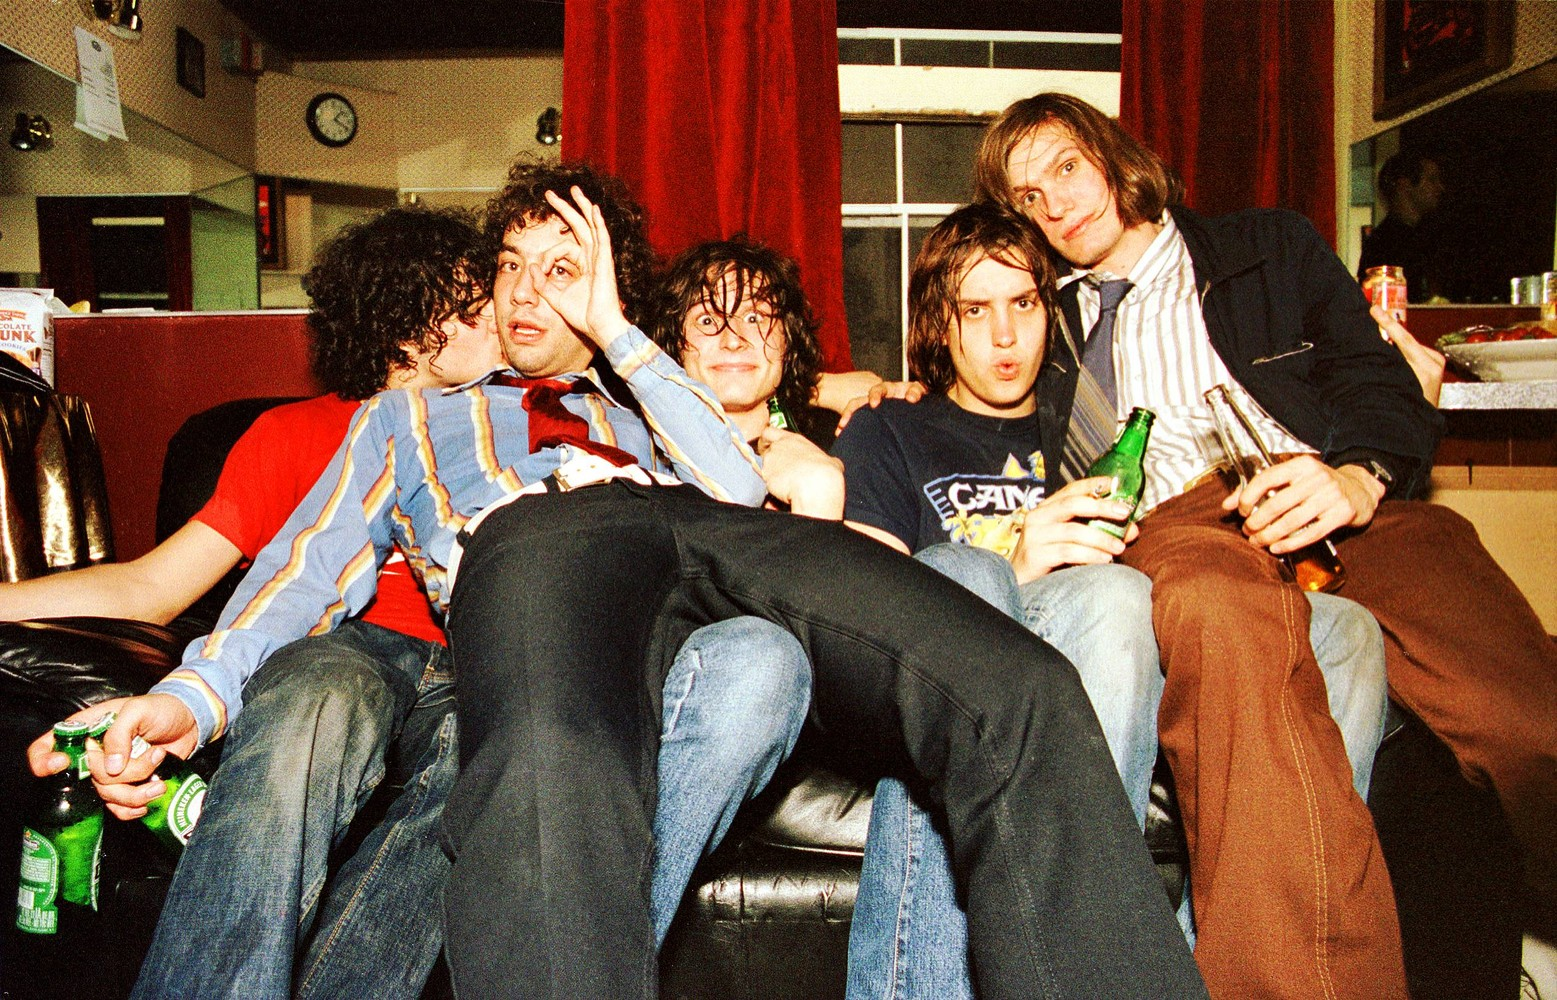 Maine Fall Wallpaper The Strokes Our 2003 Cover Story The Rebirth Of Cool